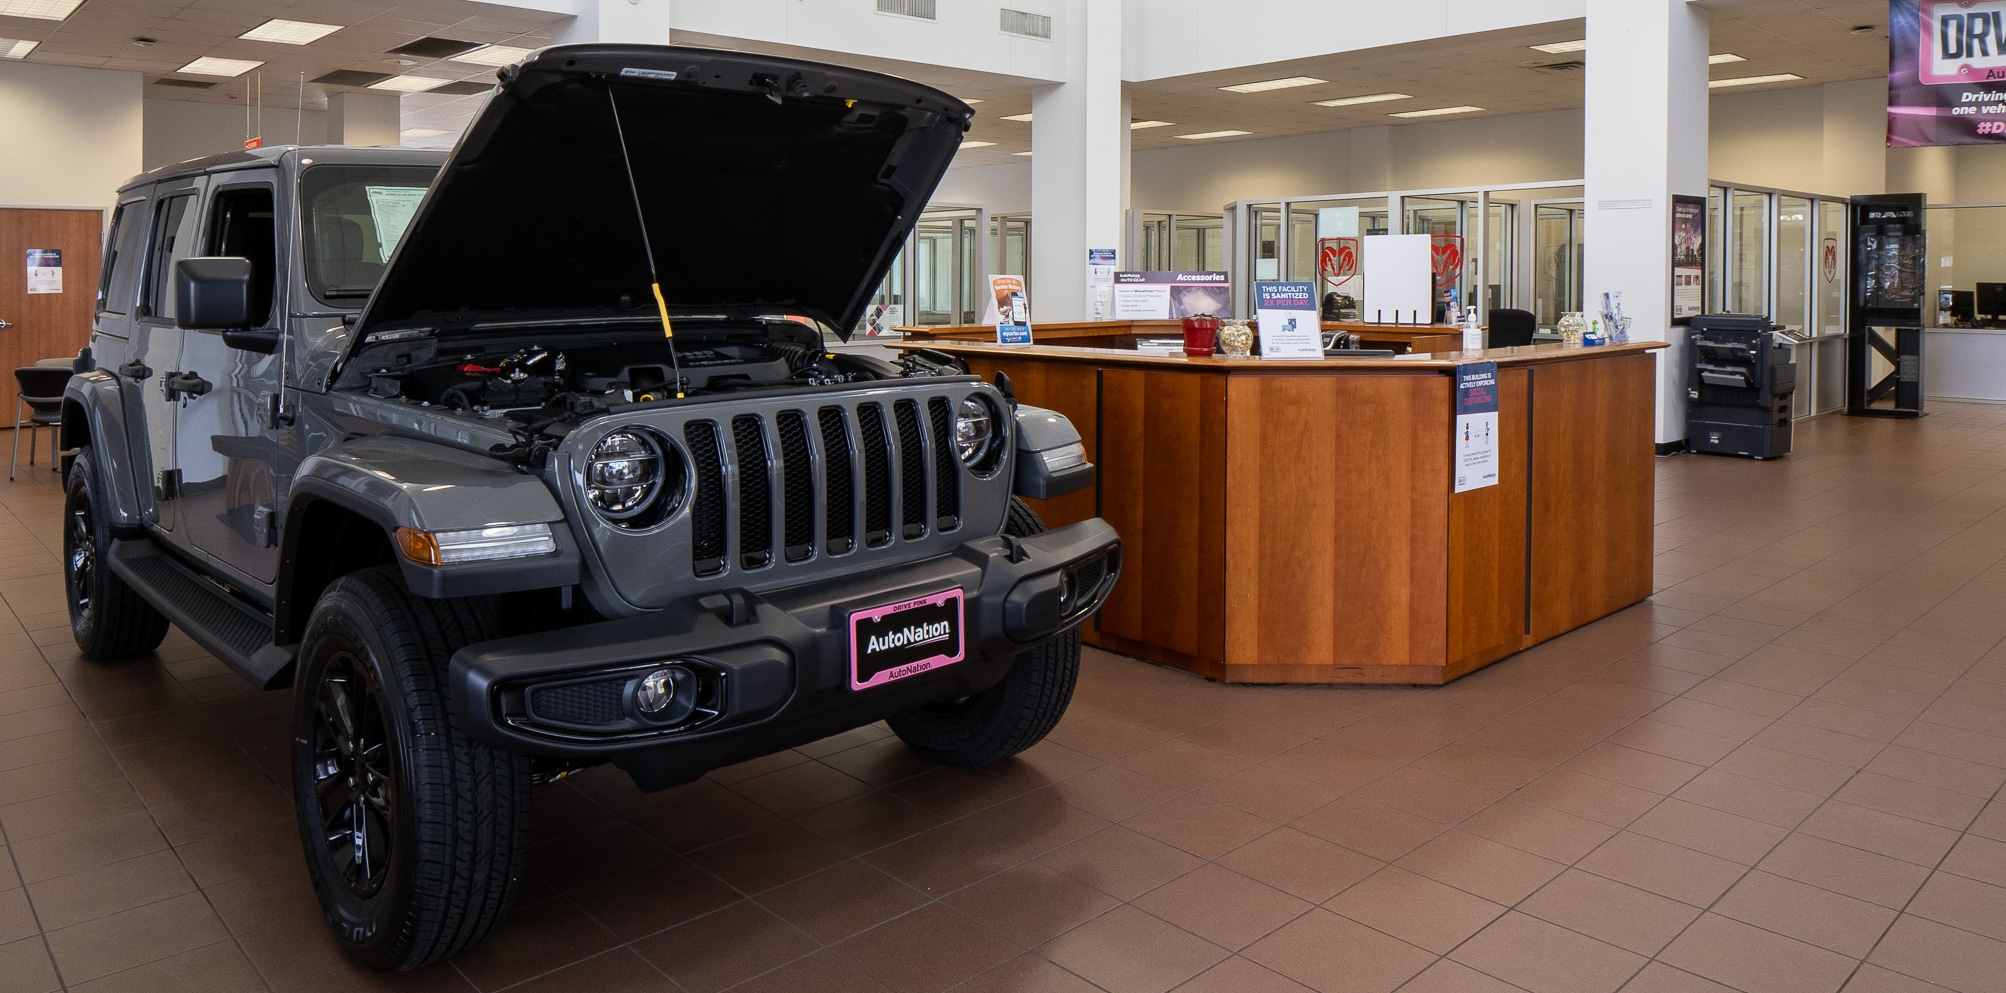 Interior view of Autonation Chrysler Dodge Jeep Ram North Fort Worth